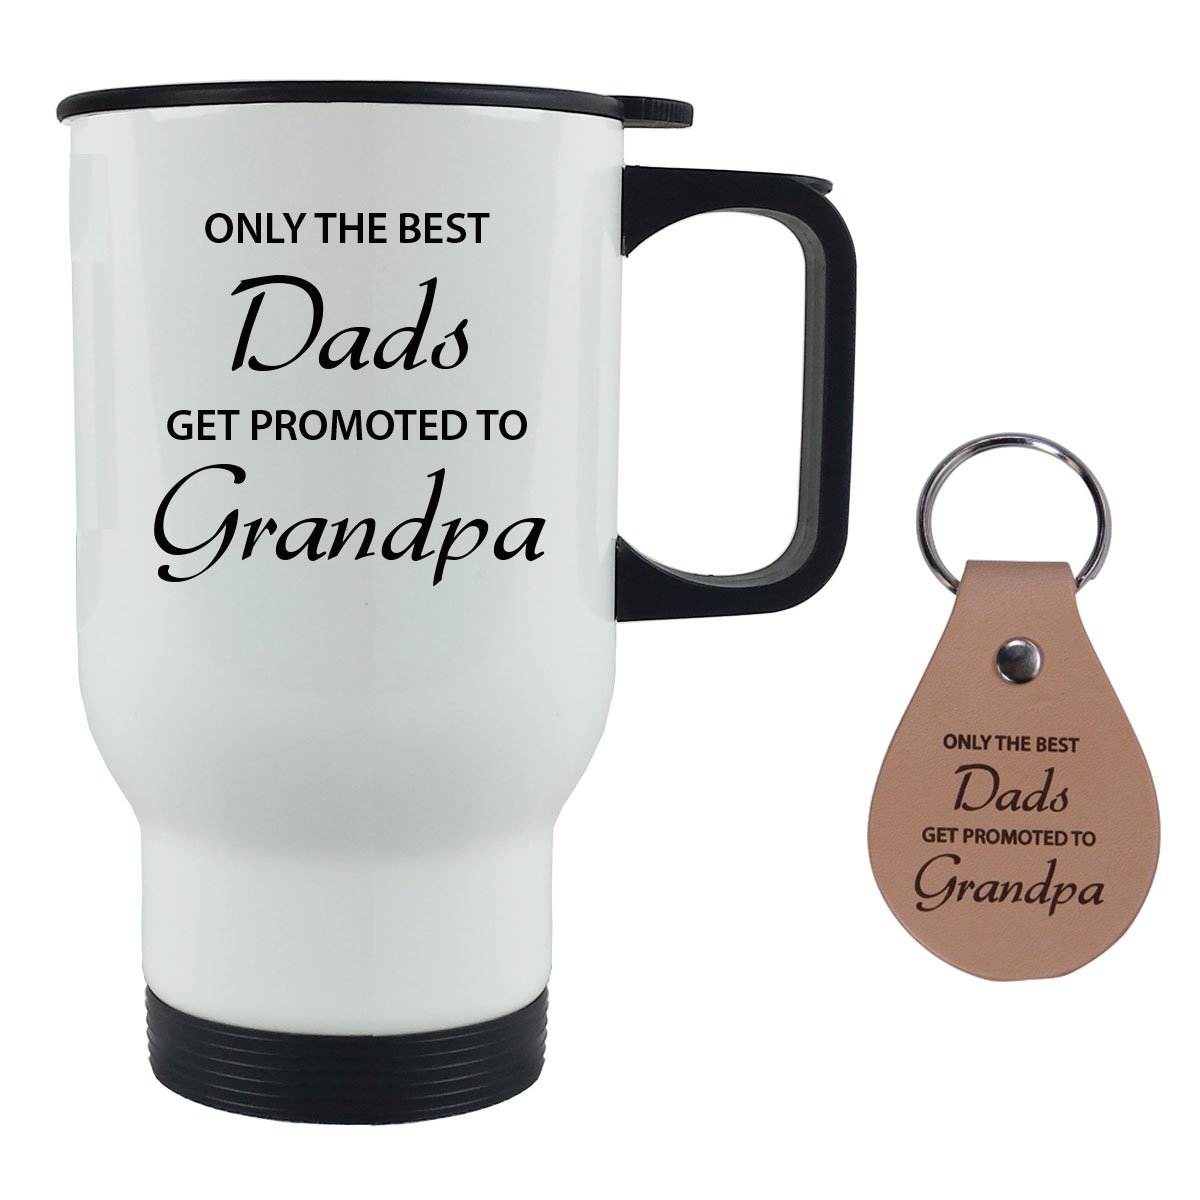 Only the Best Dads Get Promoted to Grandpa 14 oz Stainless Steel Travel Coffee Mug with Leather Keychain - For Father's Day, Birthday, Christmas for Dad, Grandpa, Grandfather, Husband (White)